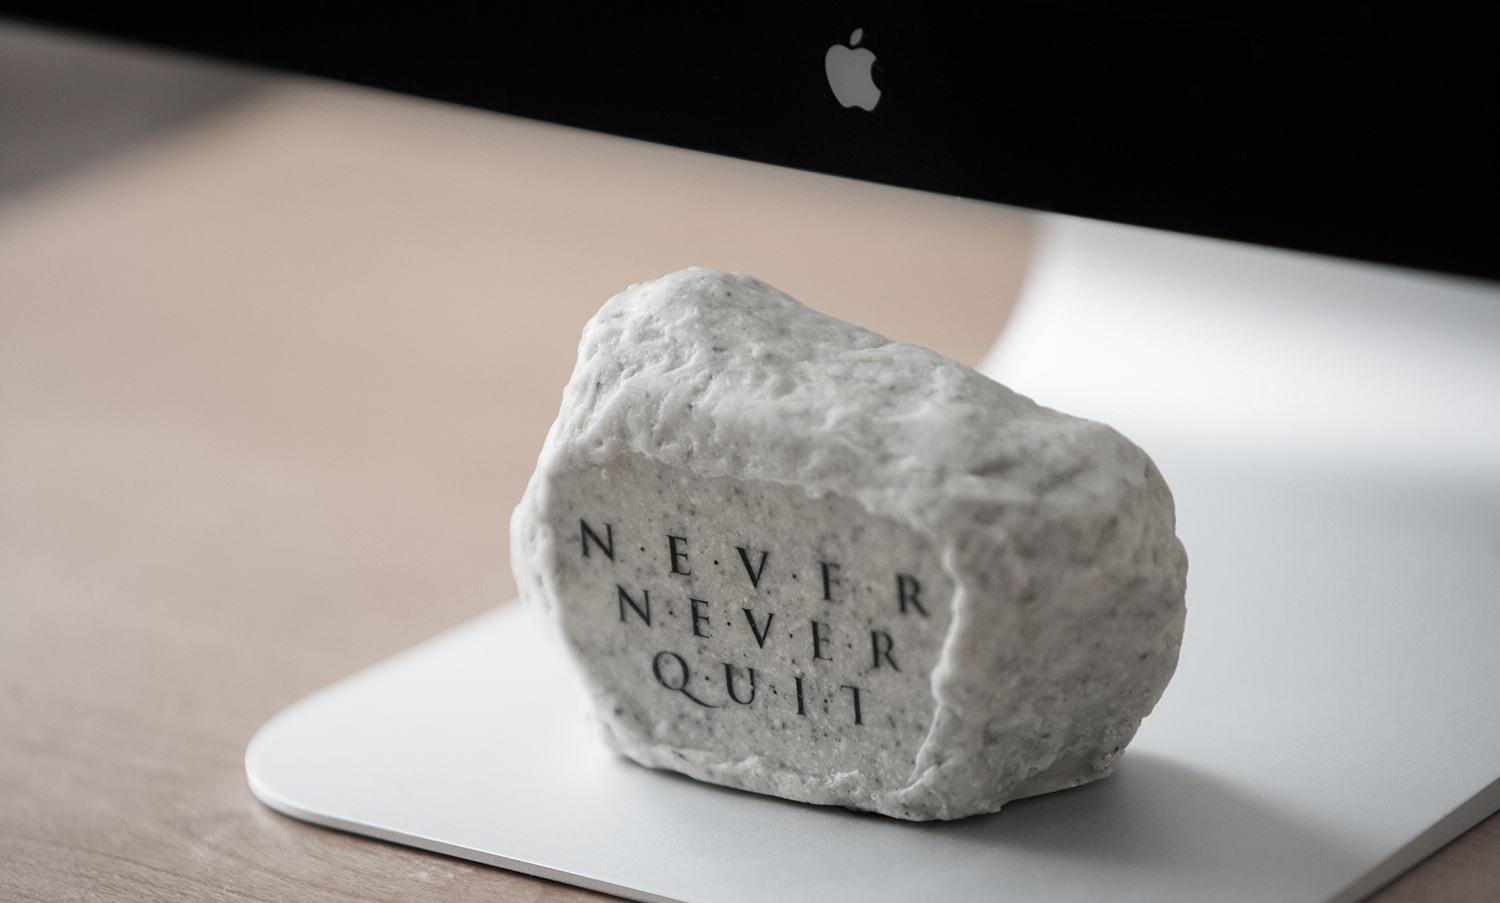 Never, Never Quit.